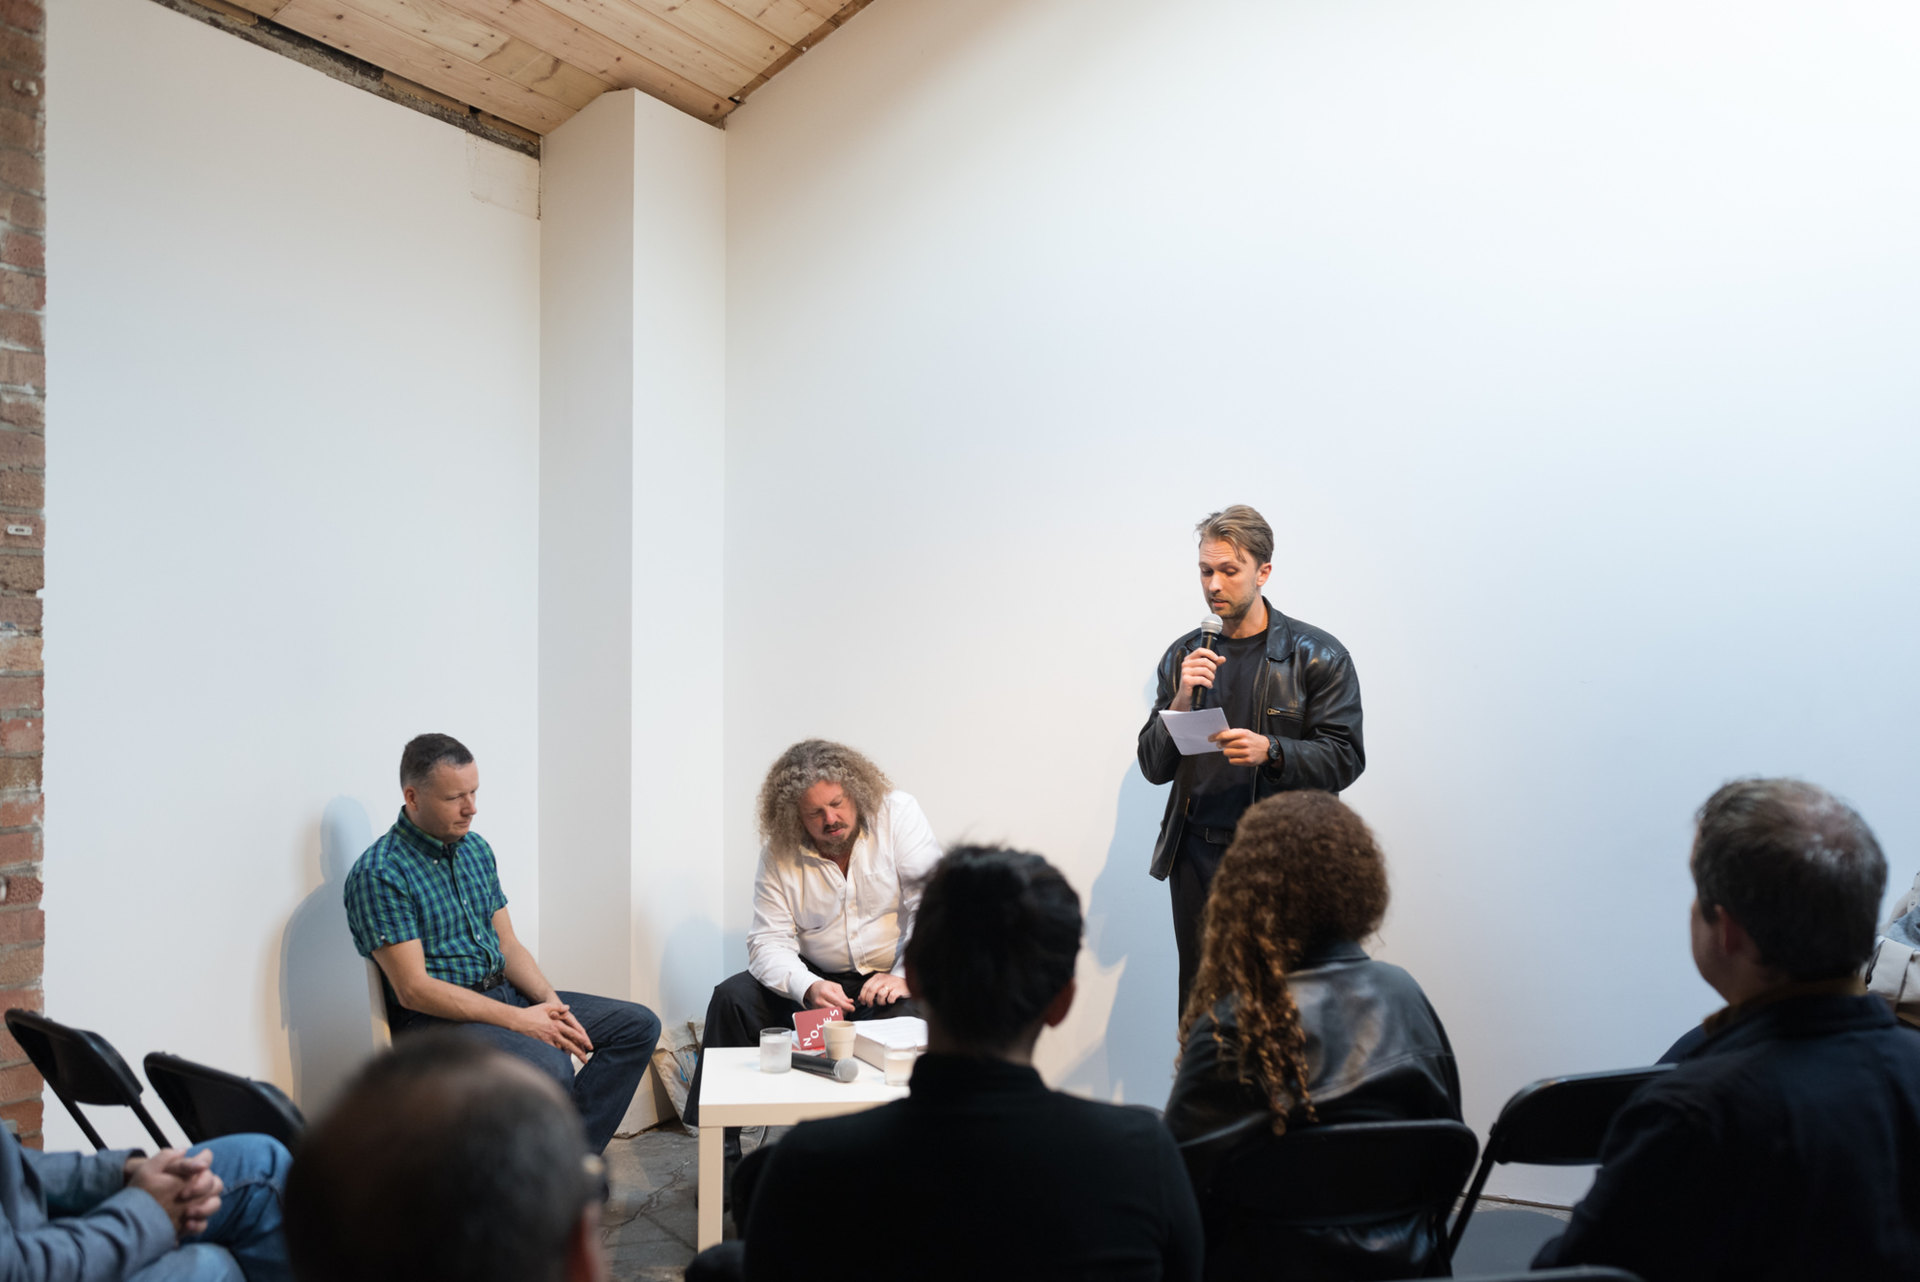 Mathieu Copeland and Stewart Home in conversation, 2019, Shit and Doom - NO!art, Cell Project Space